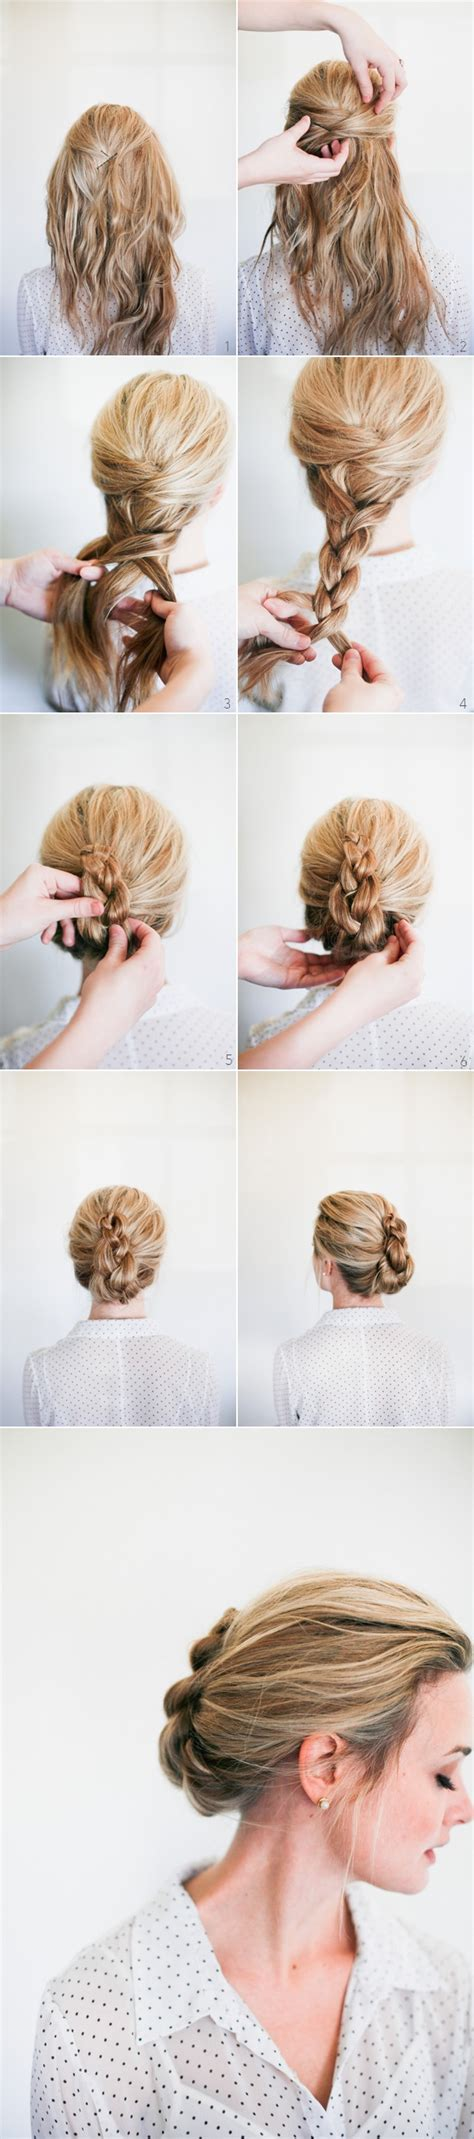 step by step twist hairstyles wedding hairstyle tutorial romantic braided french twist